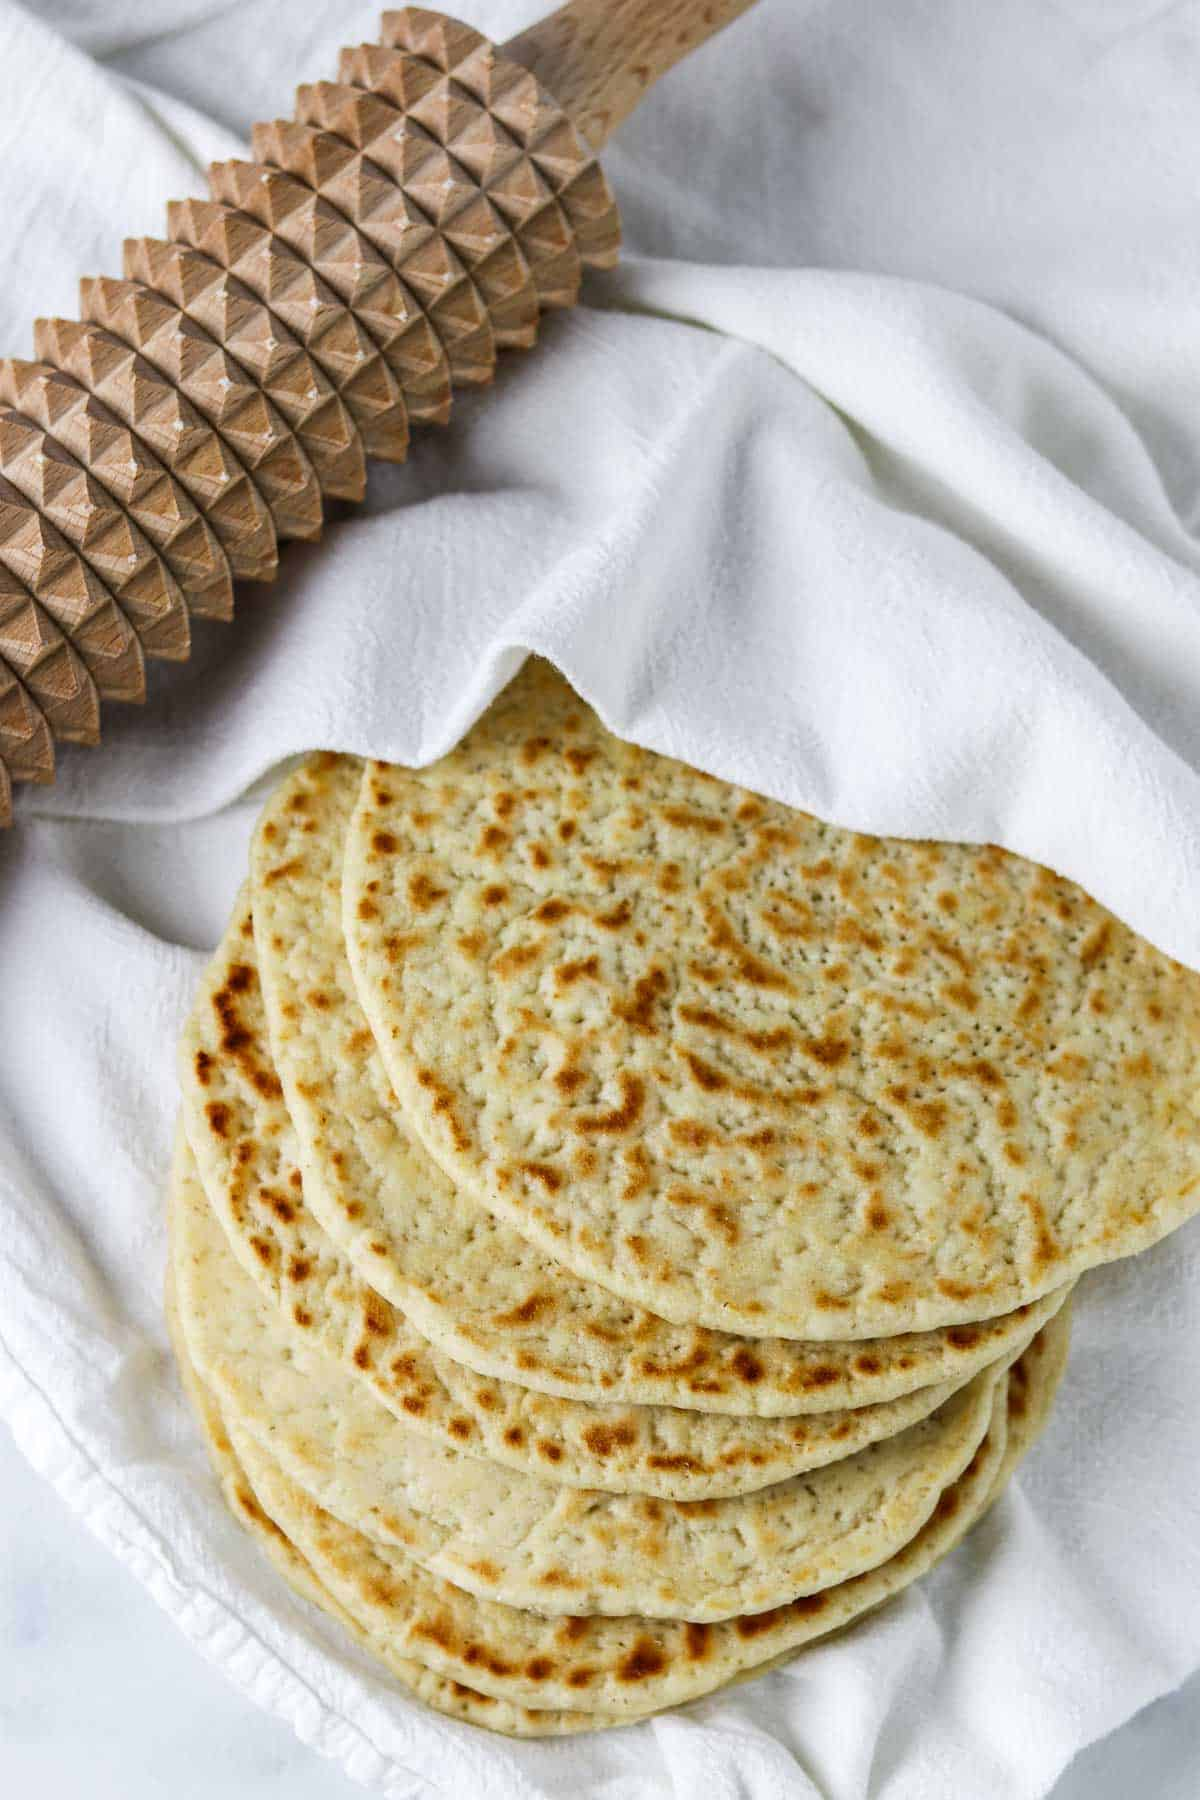 Flatbreads on a towel next to a spiked rolling pin.